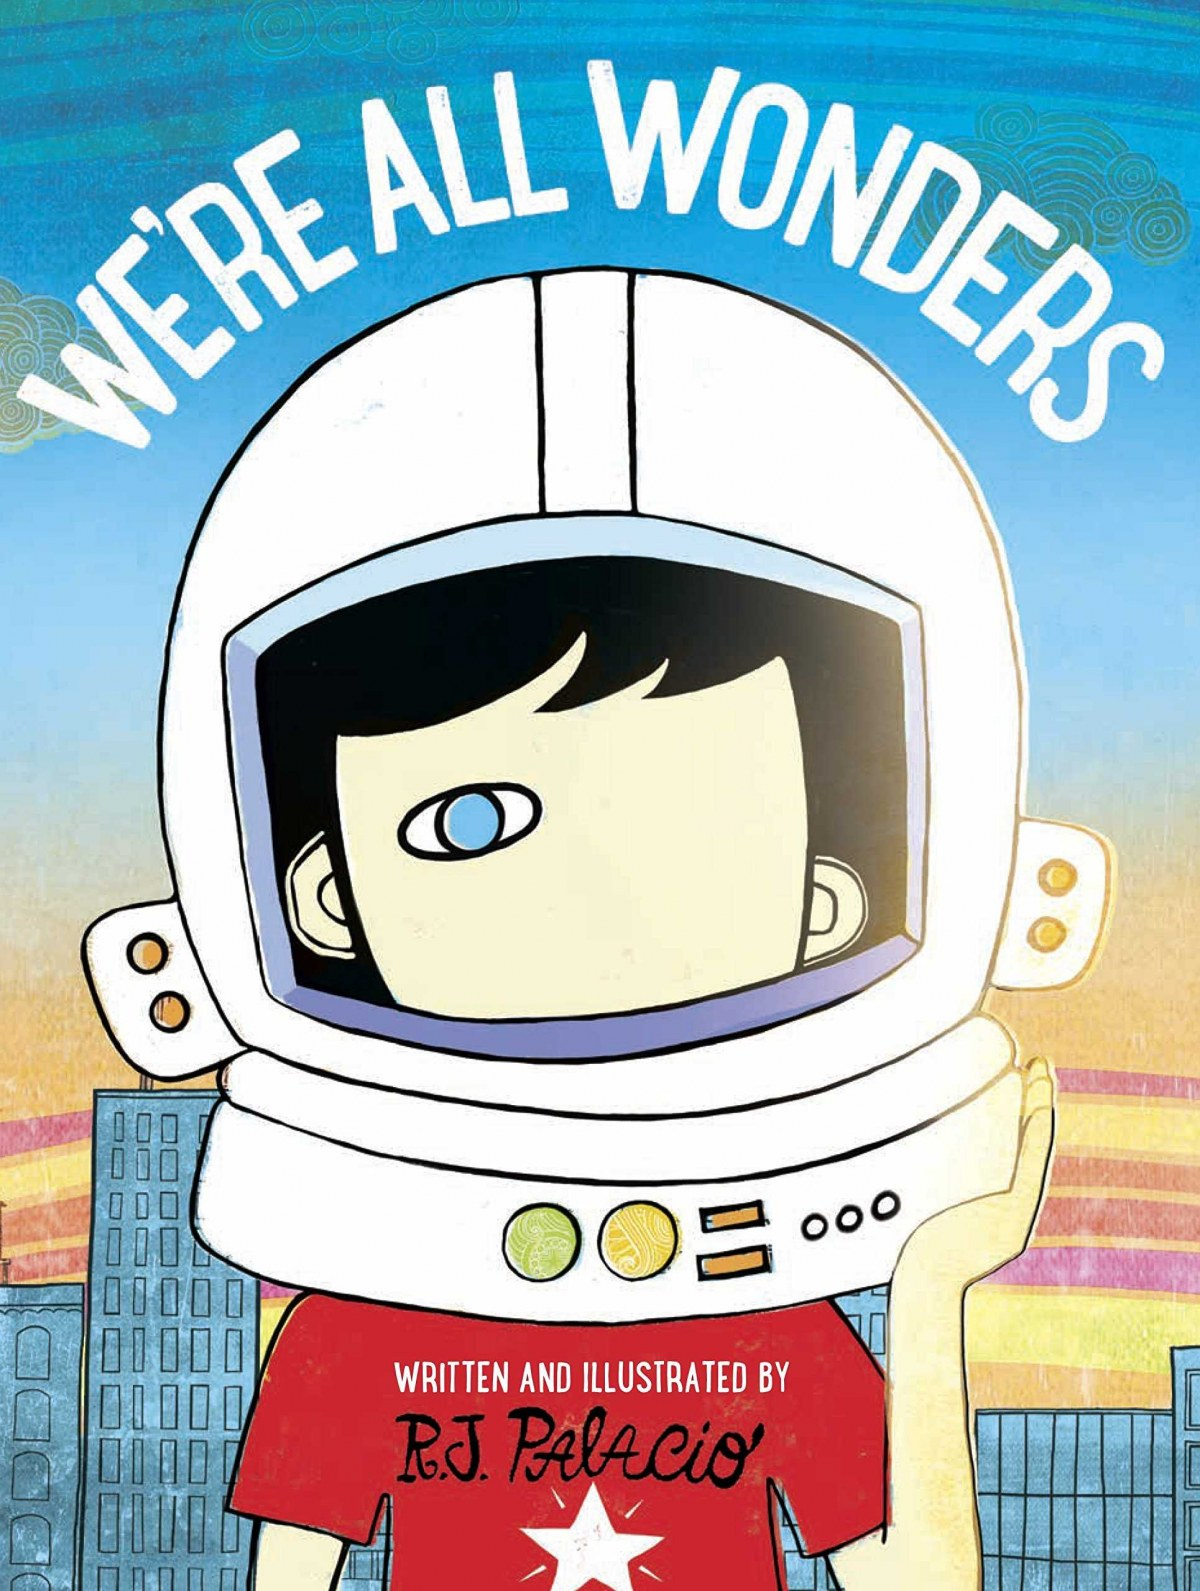 WE ARE ALL WONDER